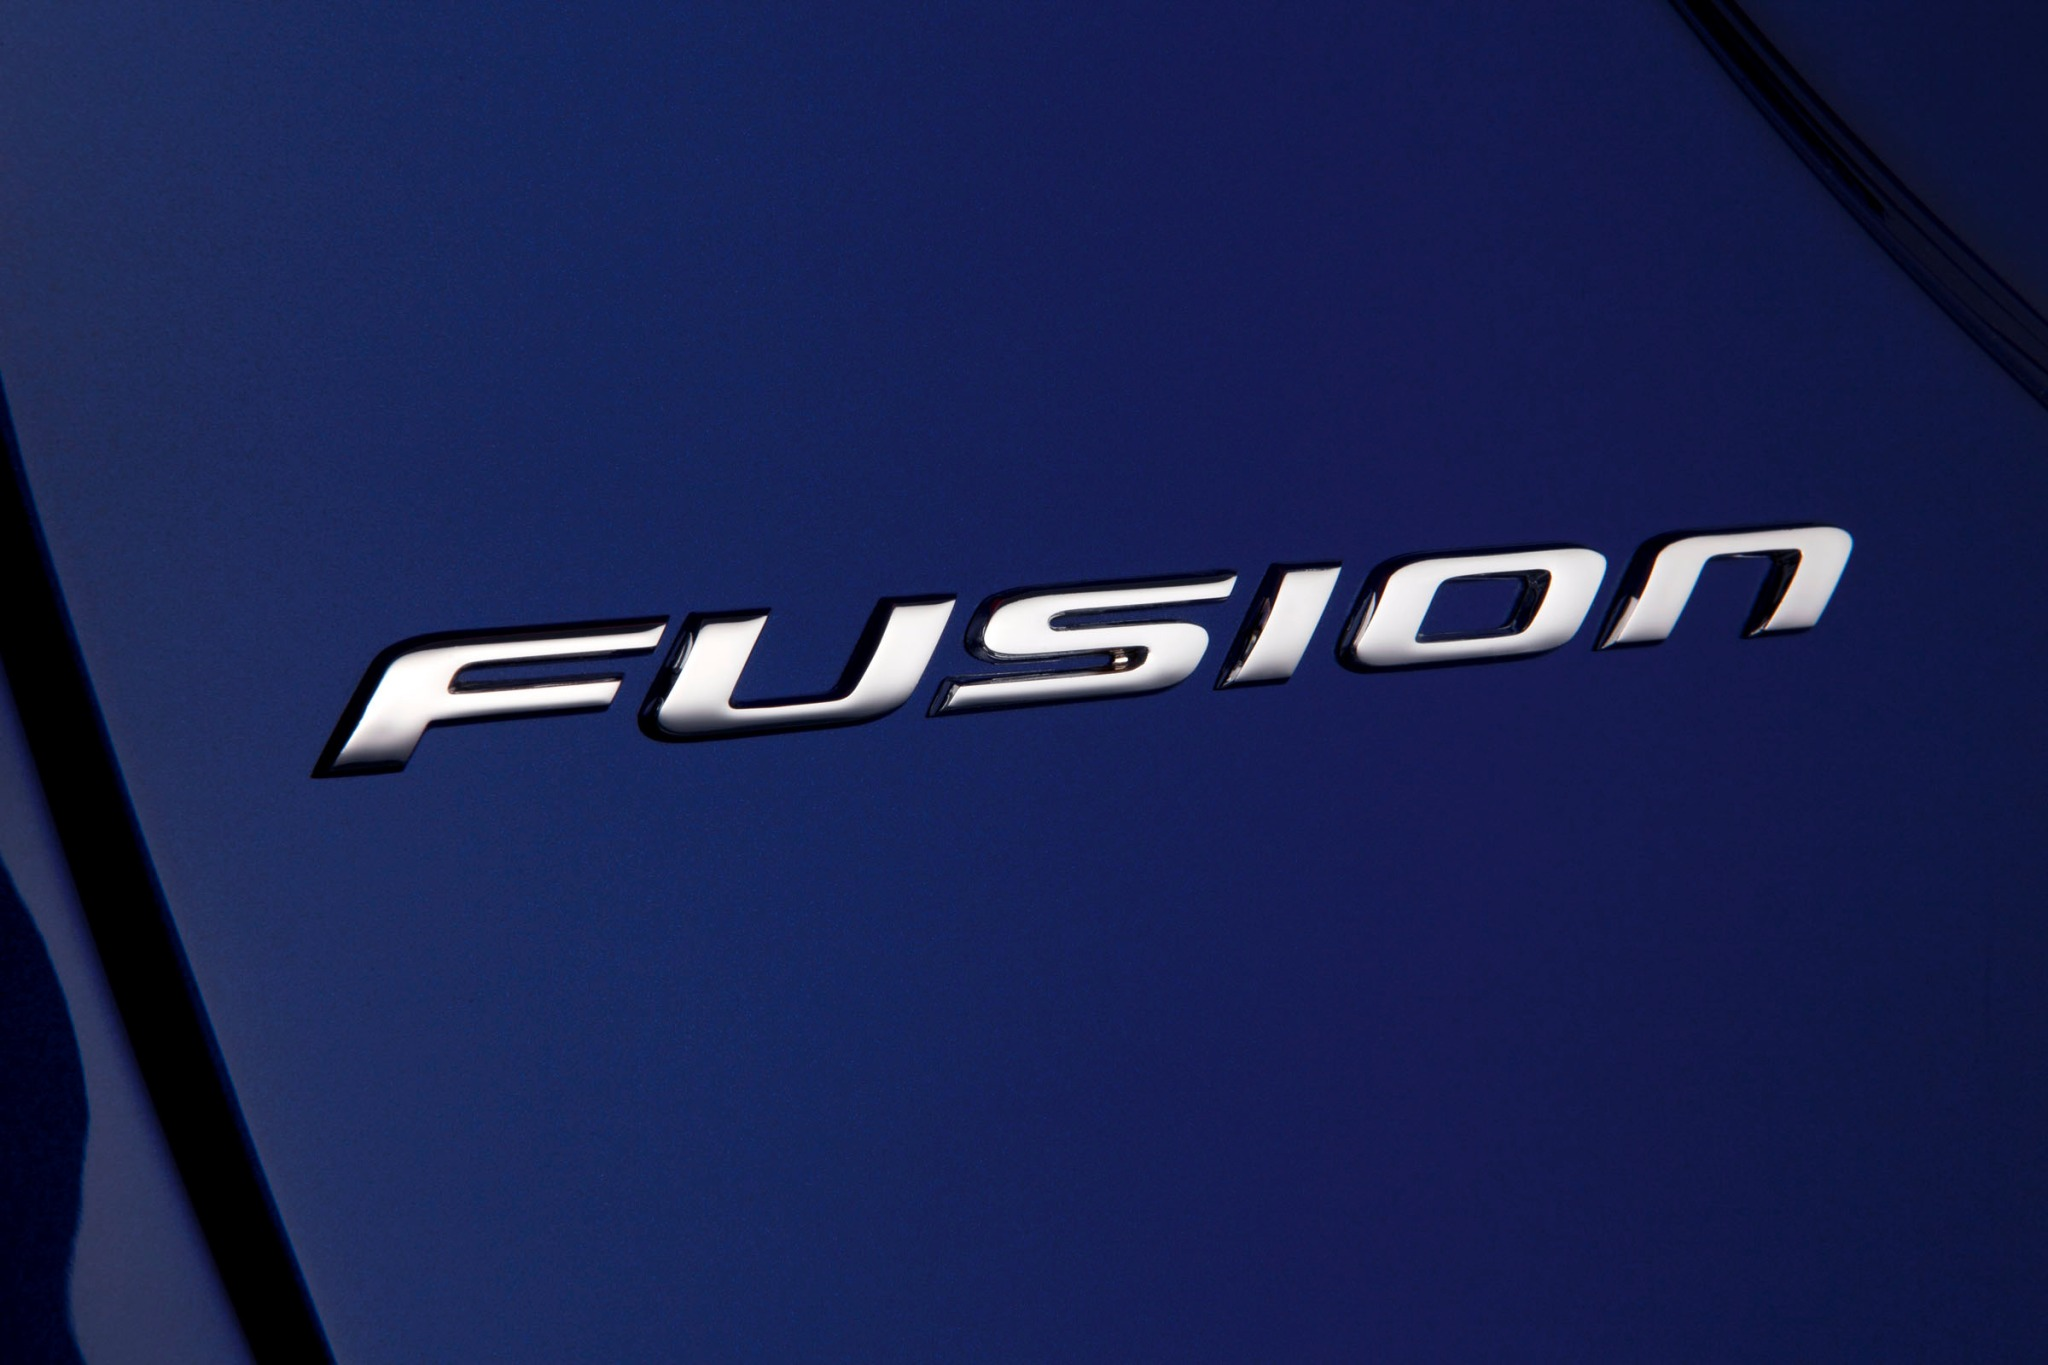 2013 Ford Fusion Hybrid S interior #4